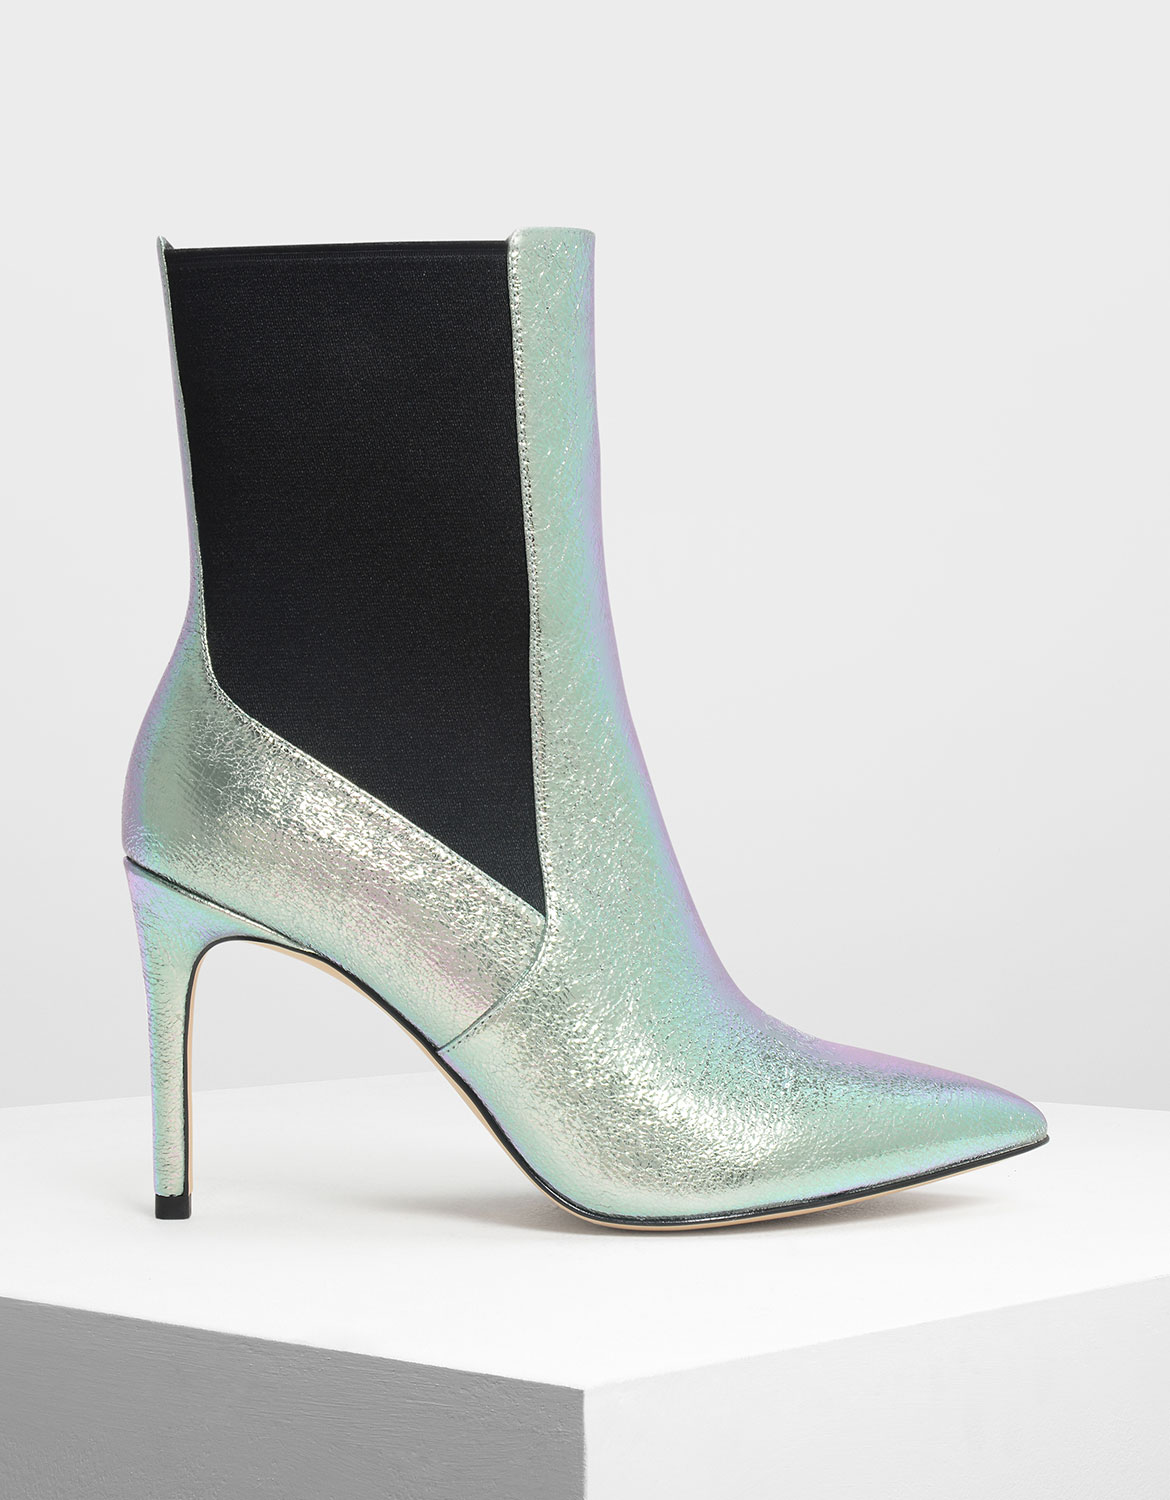 Charles & Keith Holographic Pointed Toe Chelsea Boots